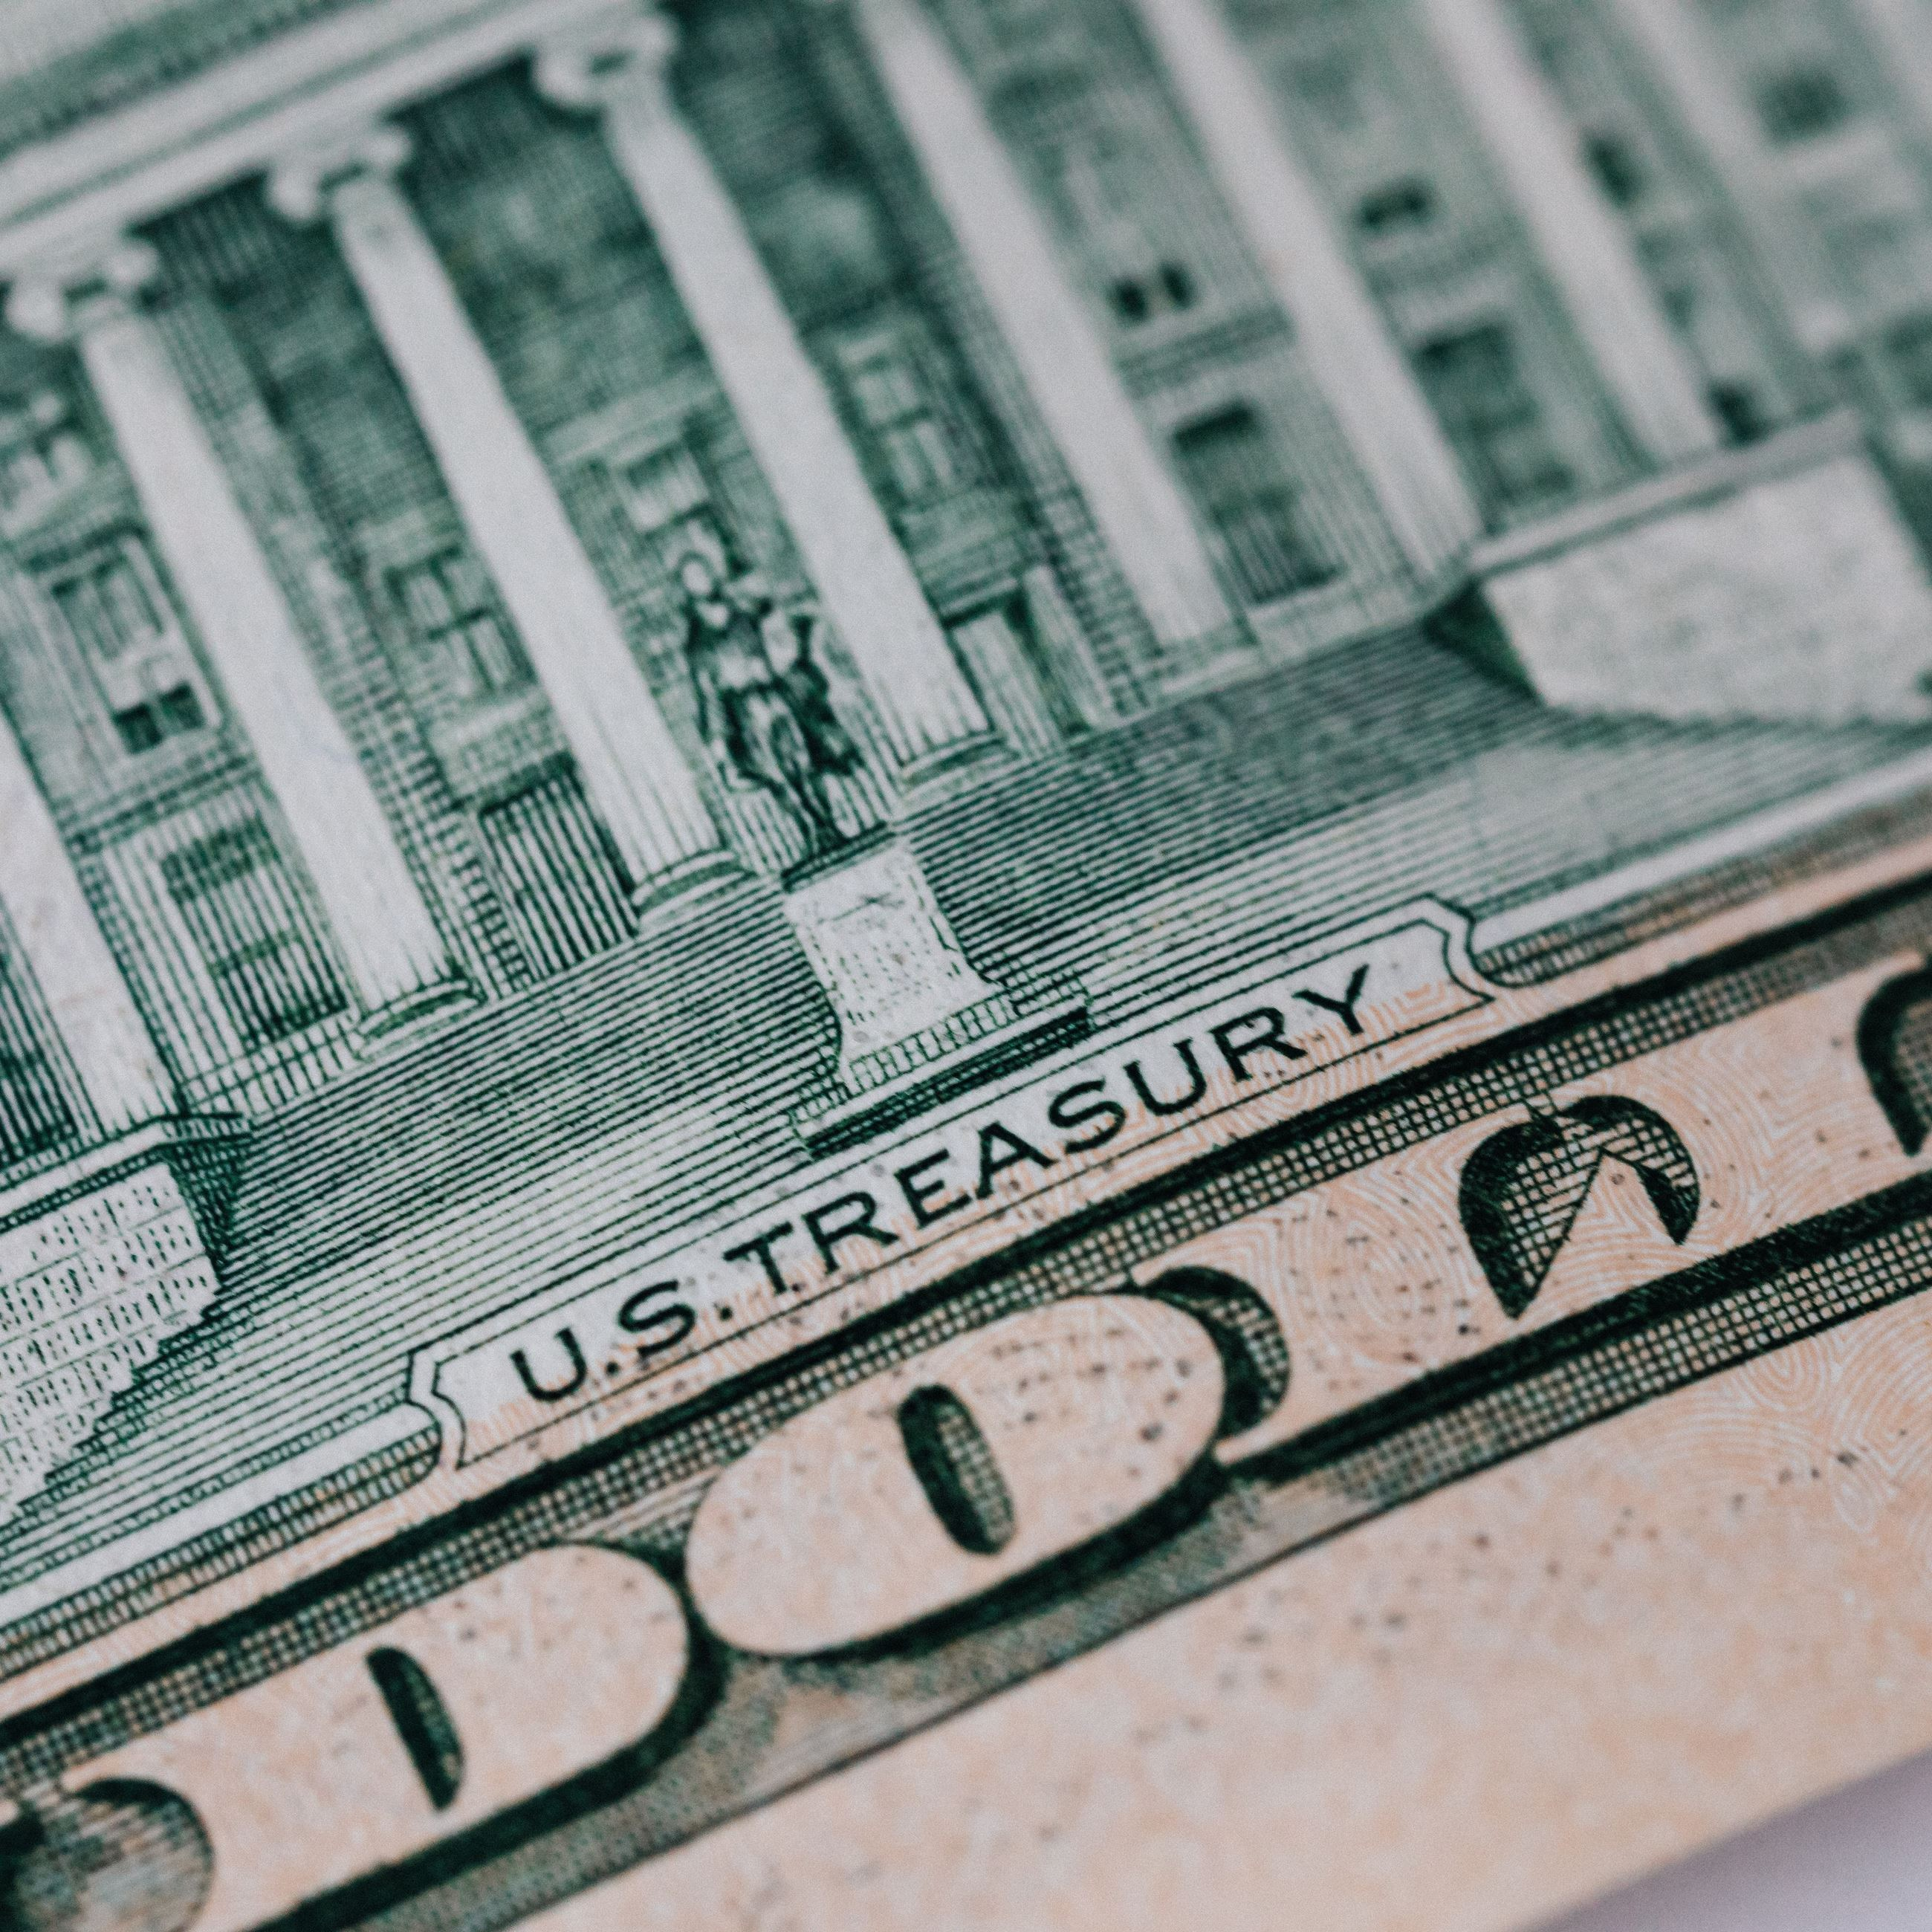 US Treasury (2)